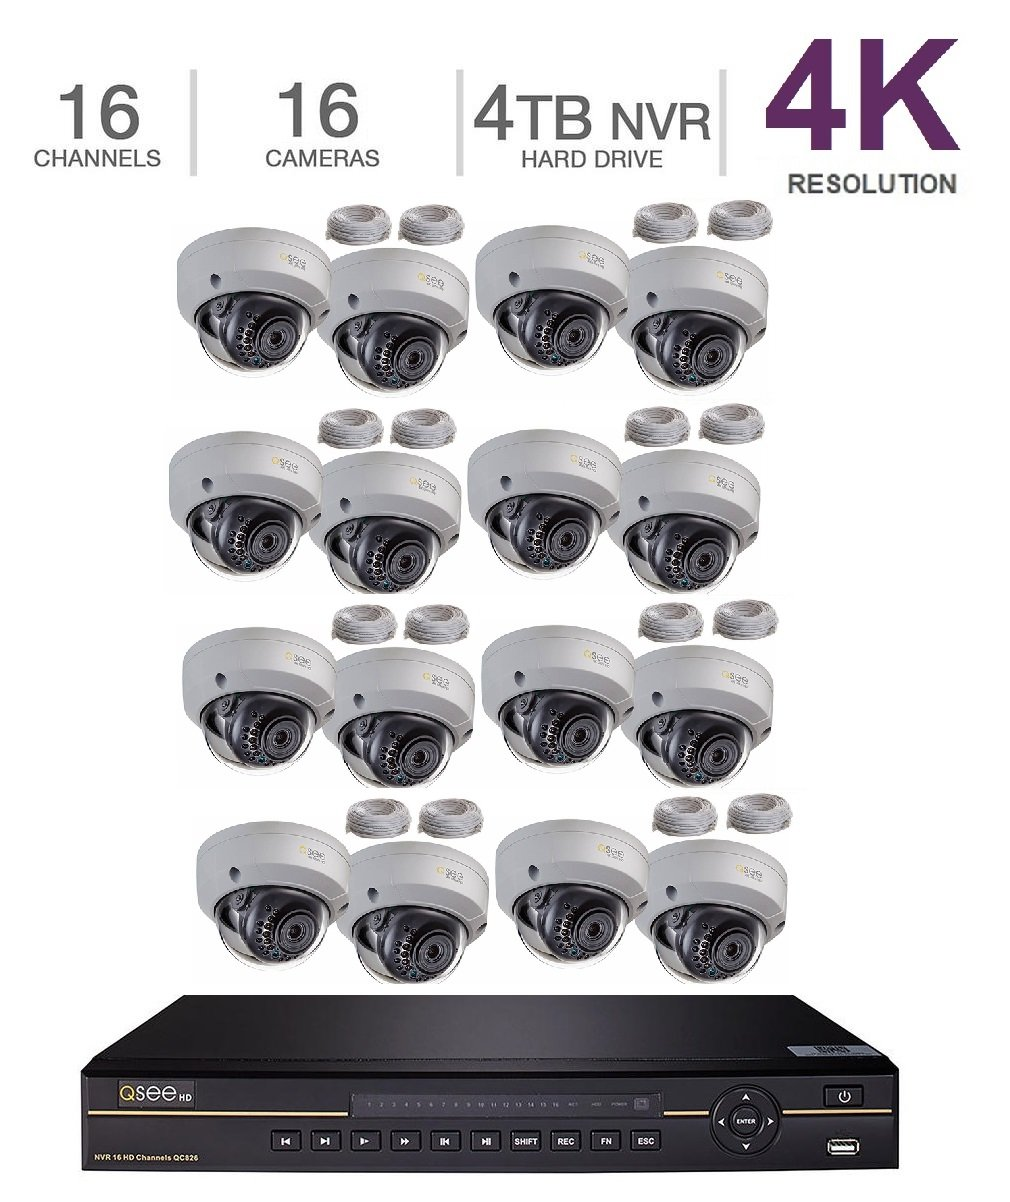 Q-See 4K 8MP 16 Dome Cameras 16-Channel NVR Ultra HD QC IP Series Surveillance with H.265 and 4TB HDD (QC826-4 +16x QCN8096D) by Q-See